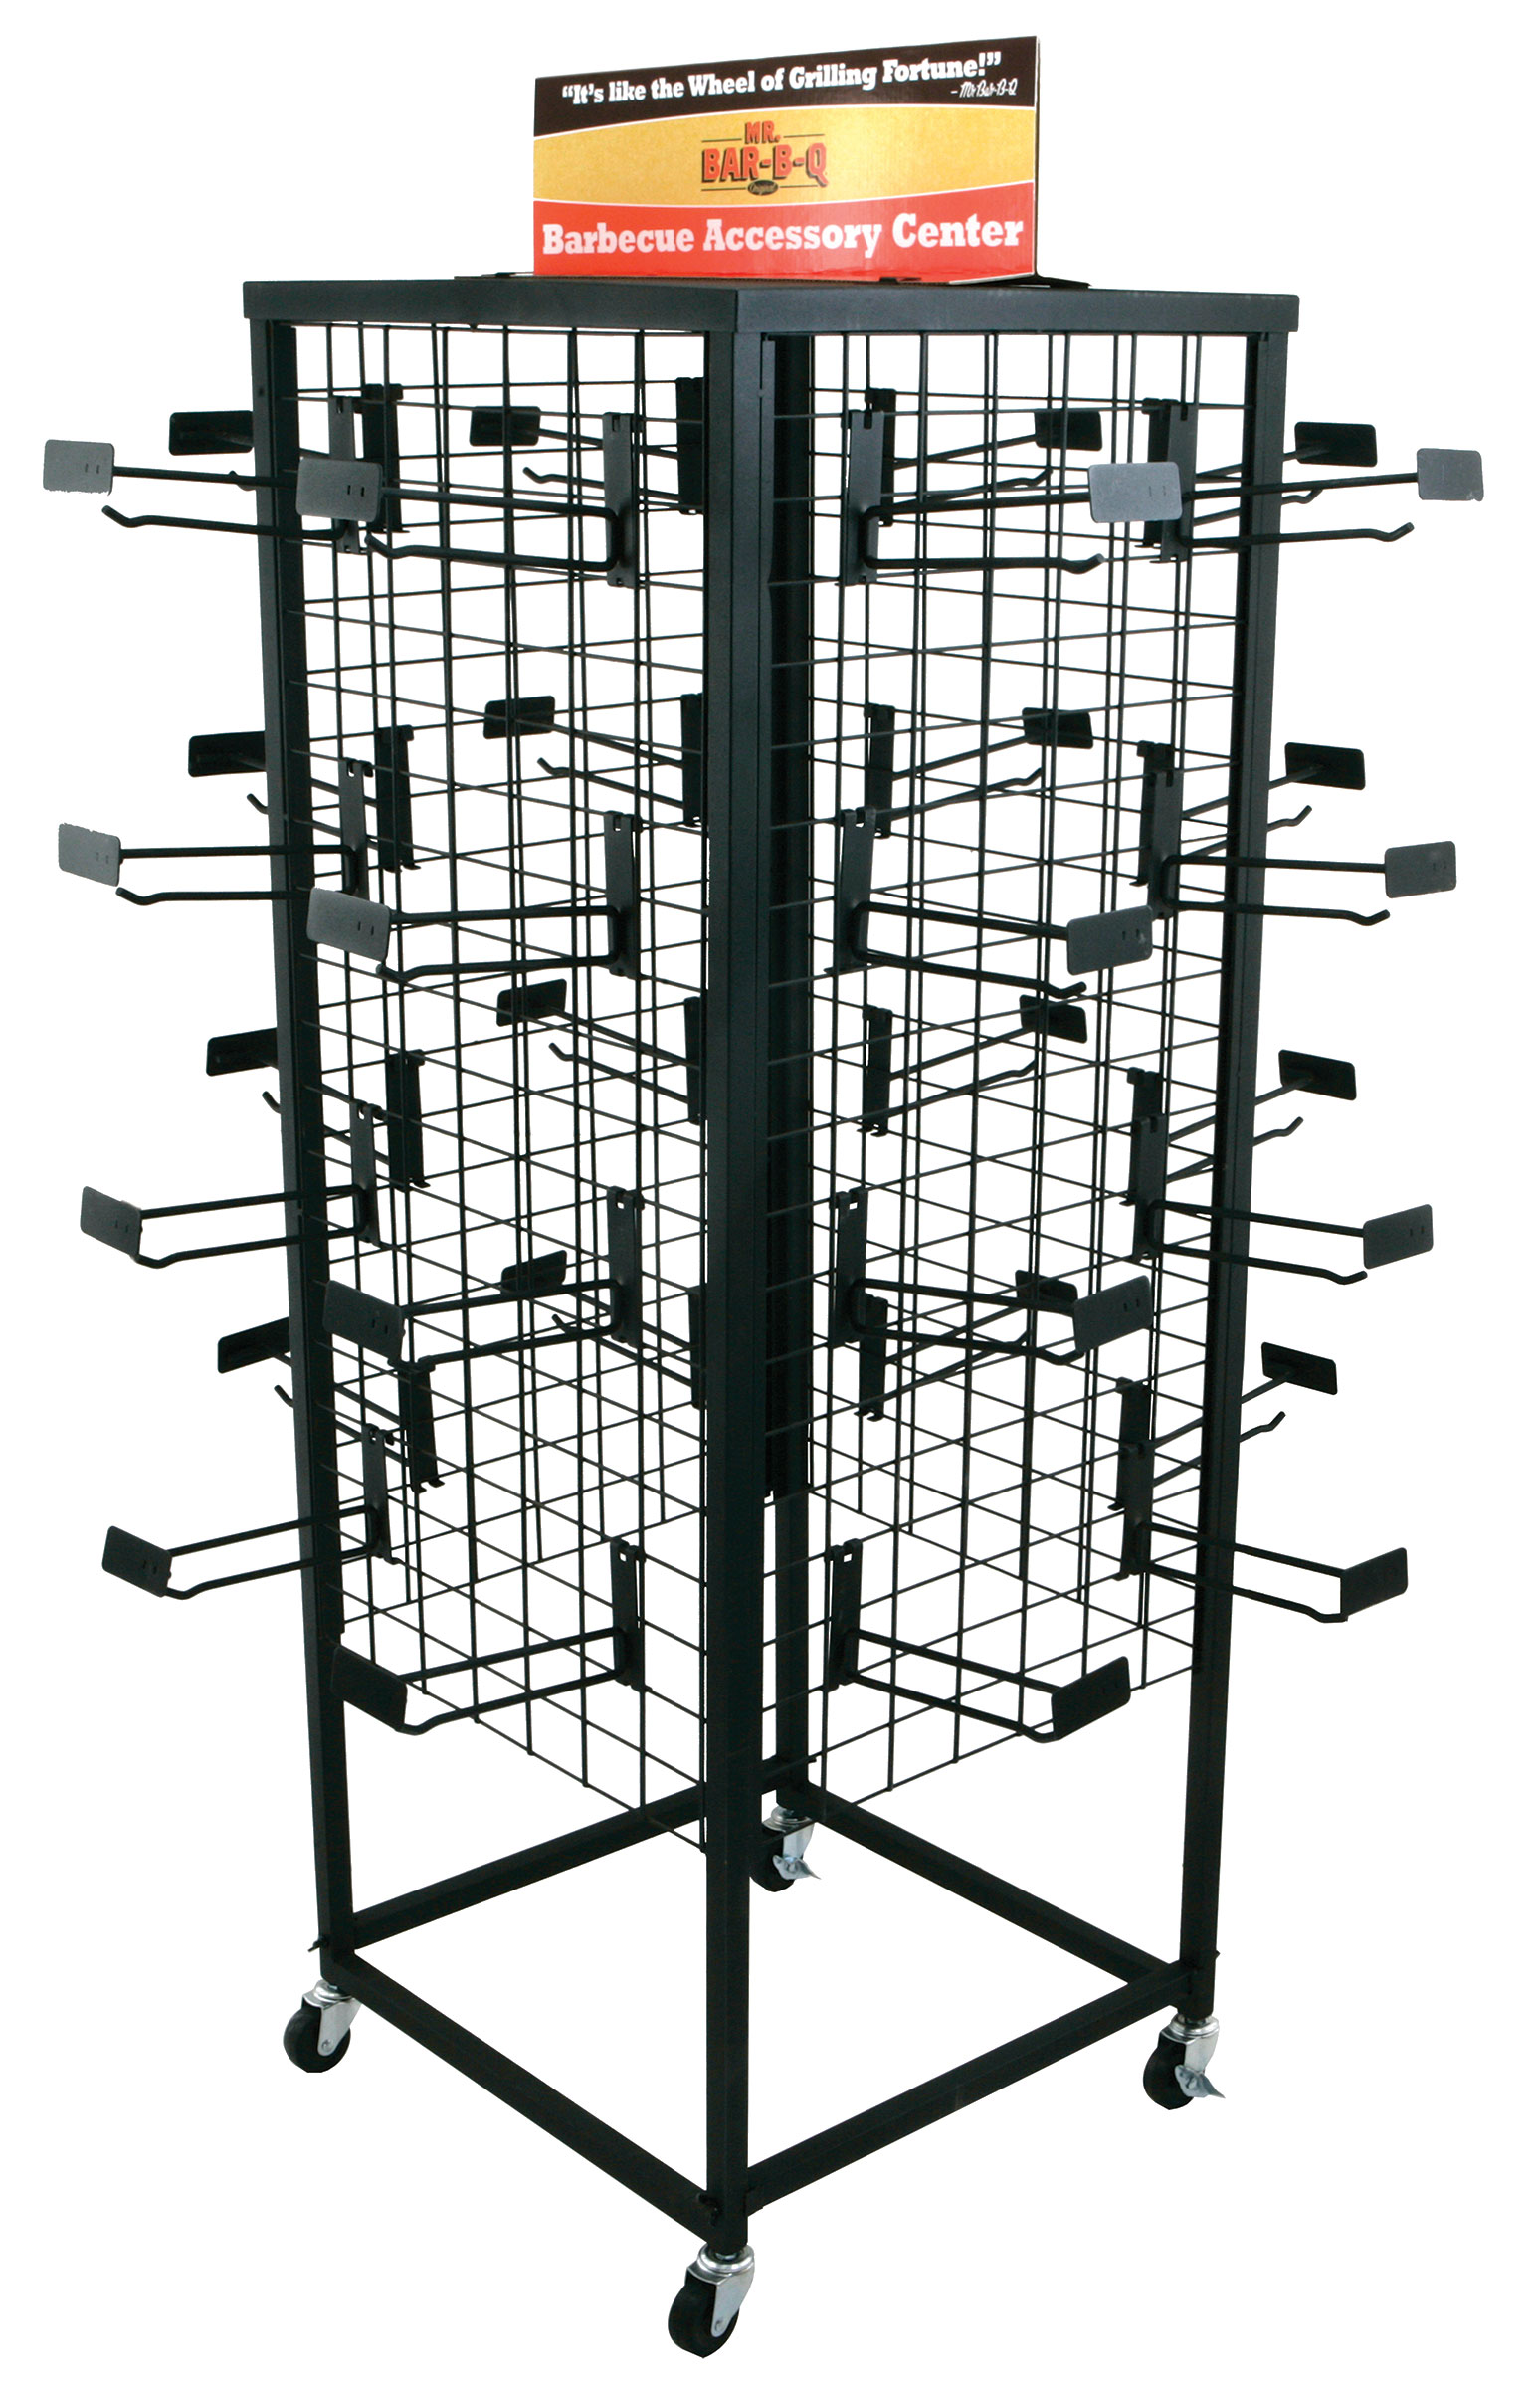 Chef Master 09007X merchandising rack